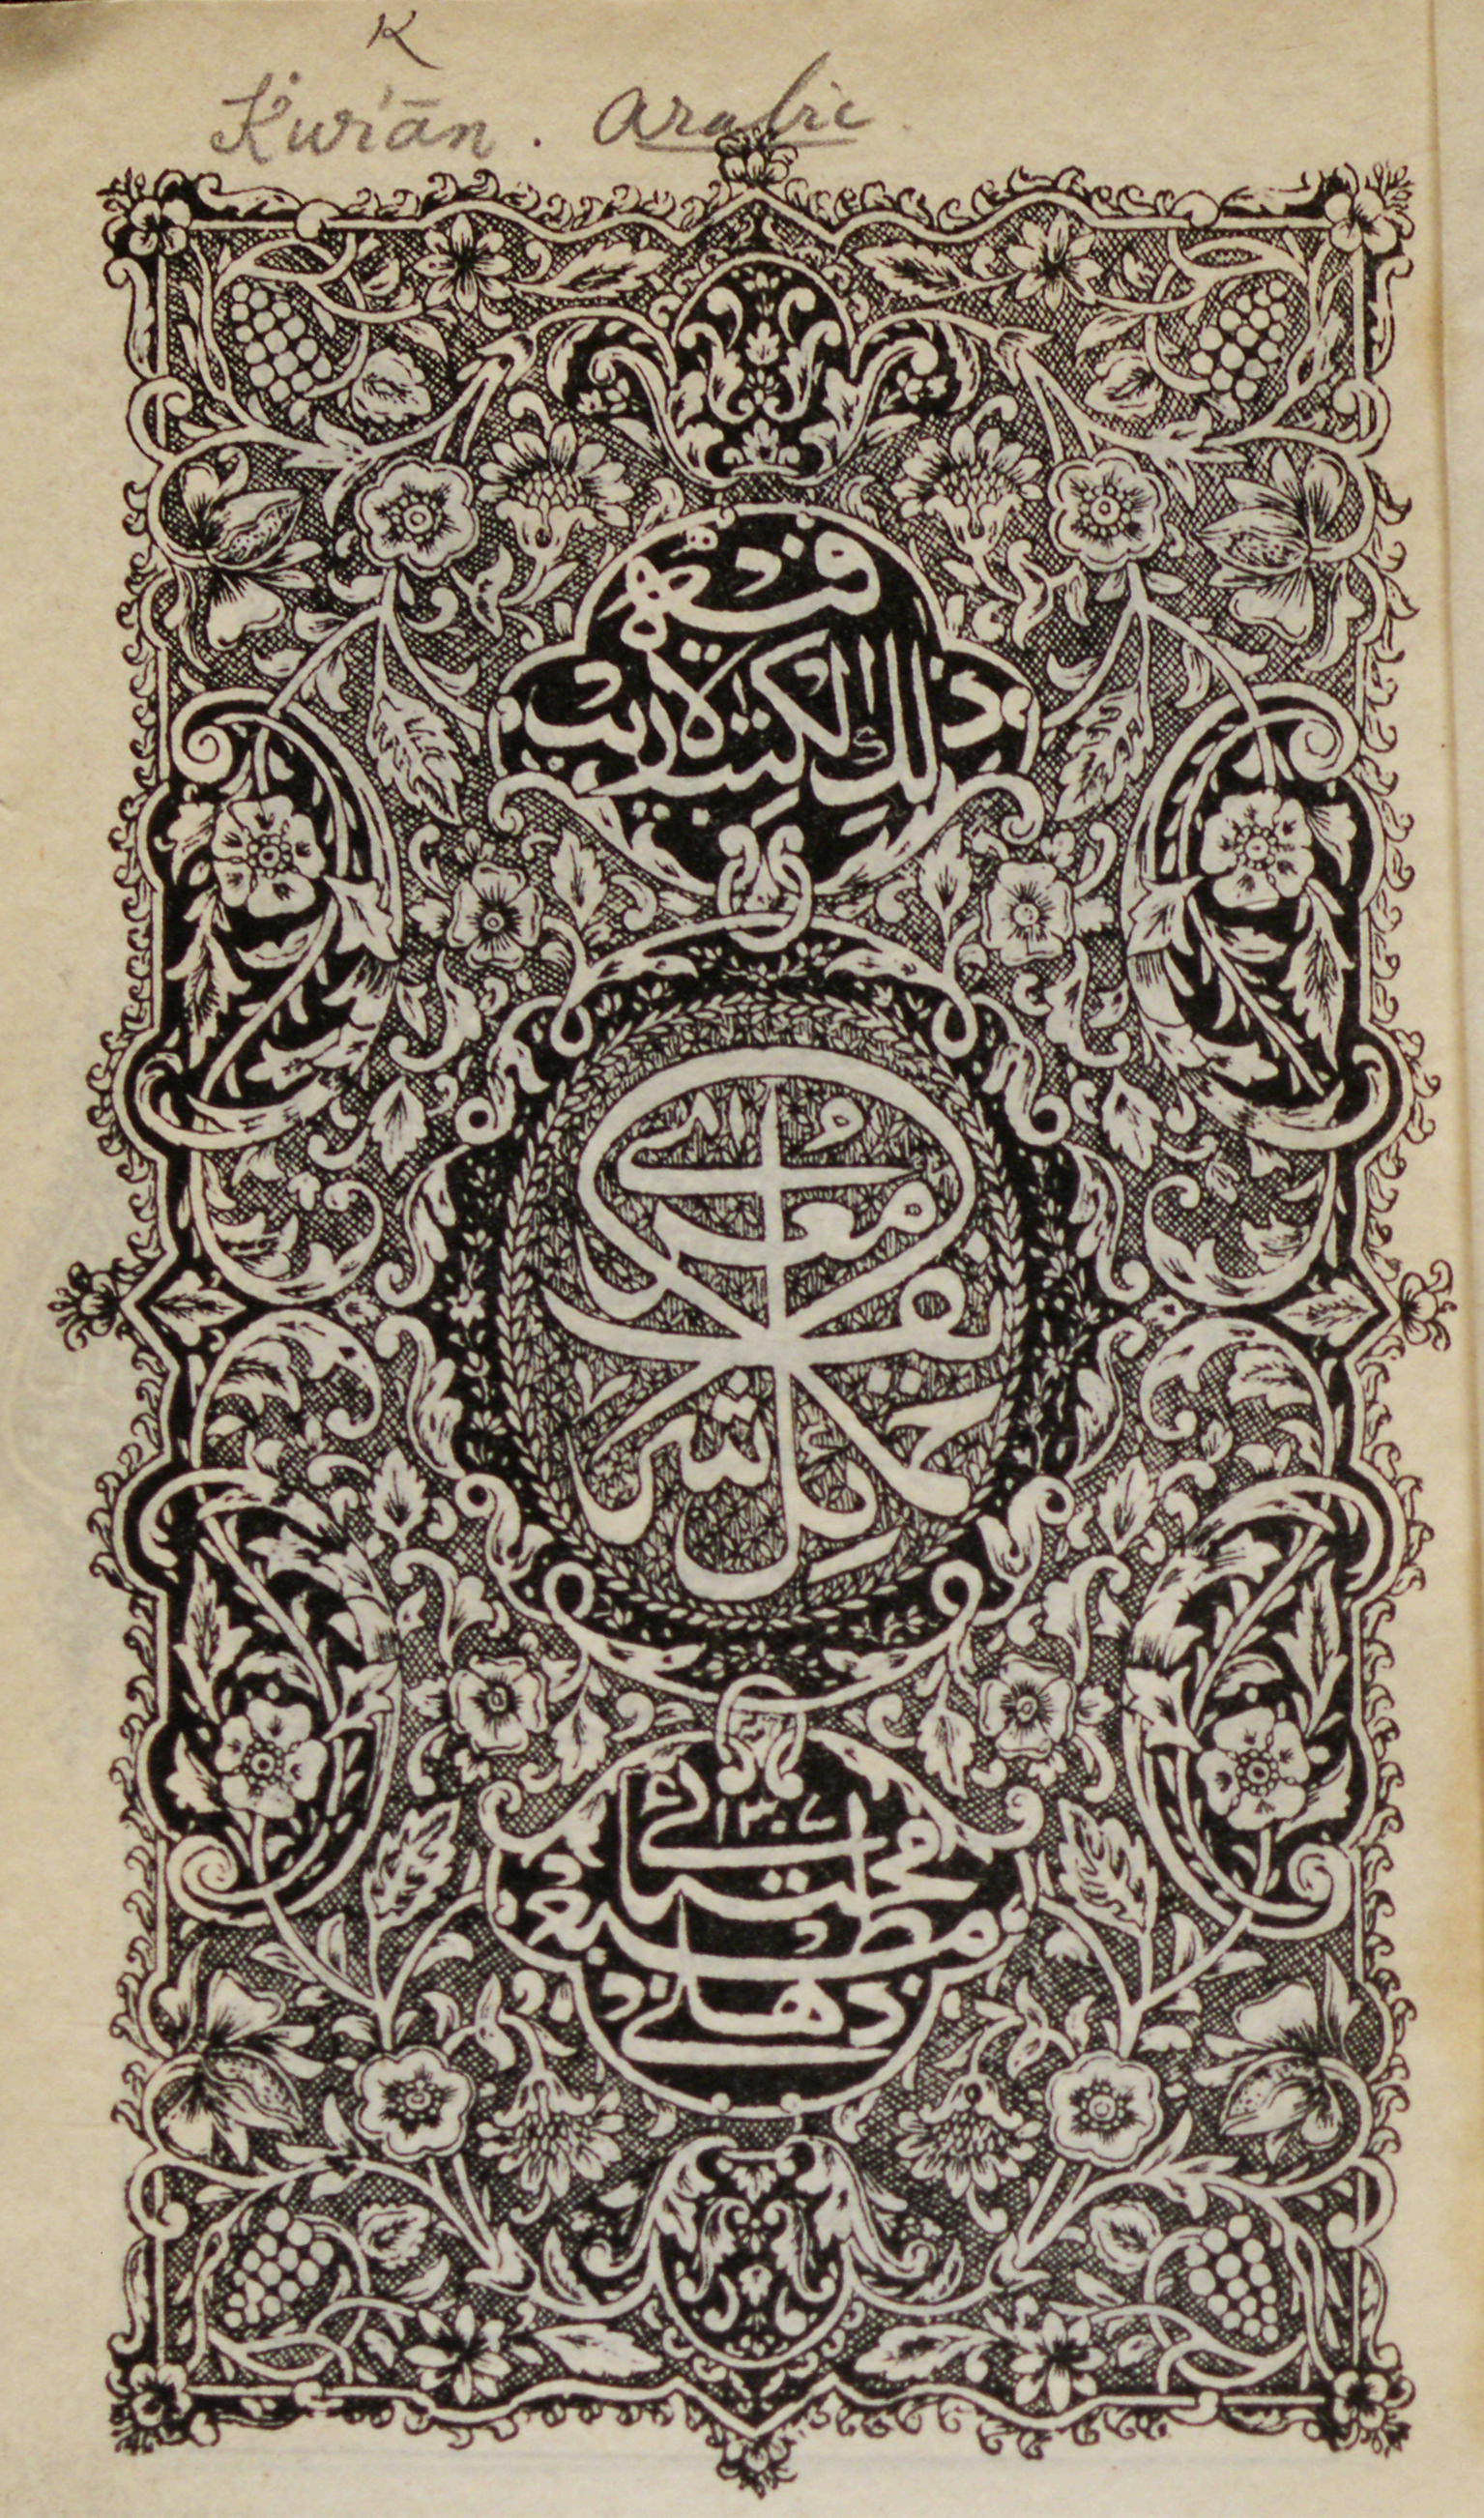 In Secret Kept, In Silence Sealed: revealing the hidden texts in Early Arabic Printed Books from the British Library